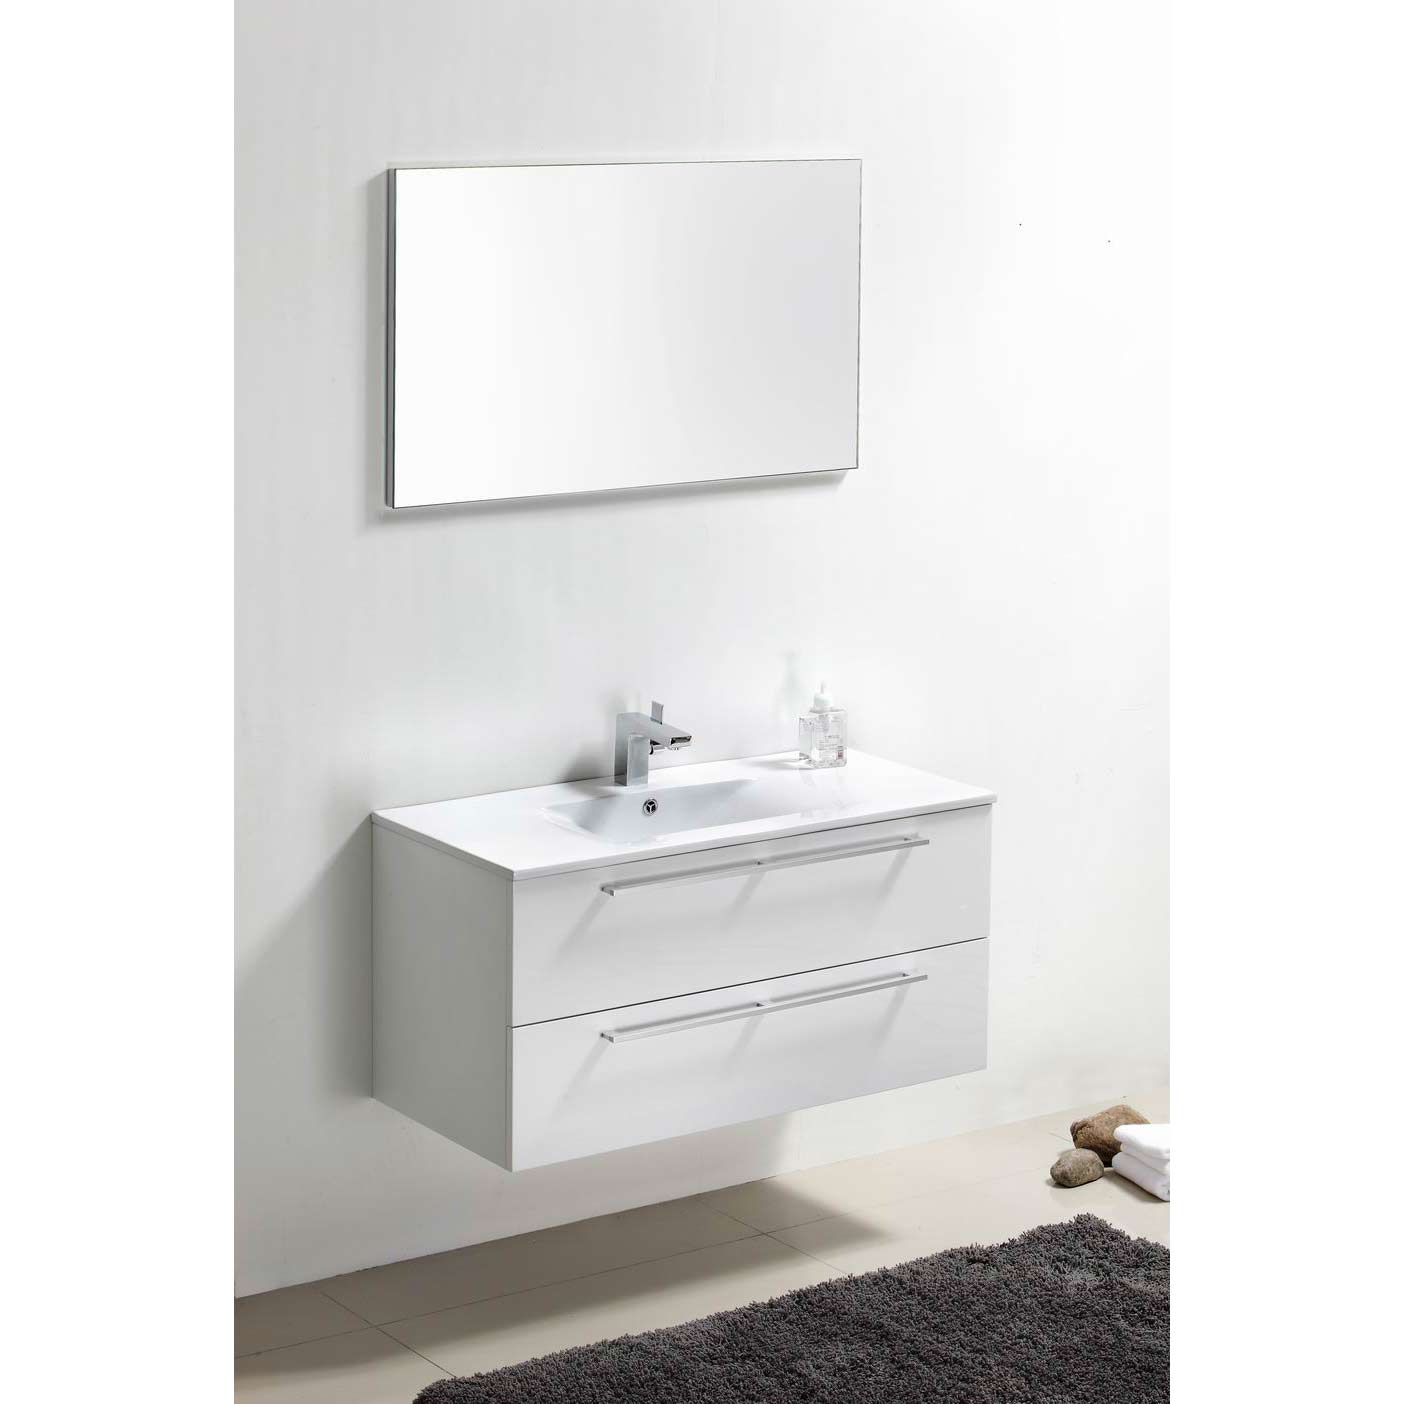 Buy Caen 40 Inch Wall Mount Modern Bathroom Vanity Set Grey Oak Optional Mirror Rs Dm1000 Hgw On